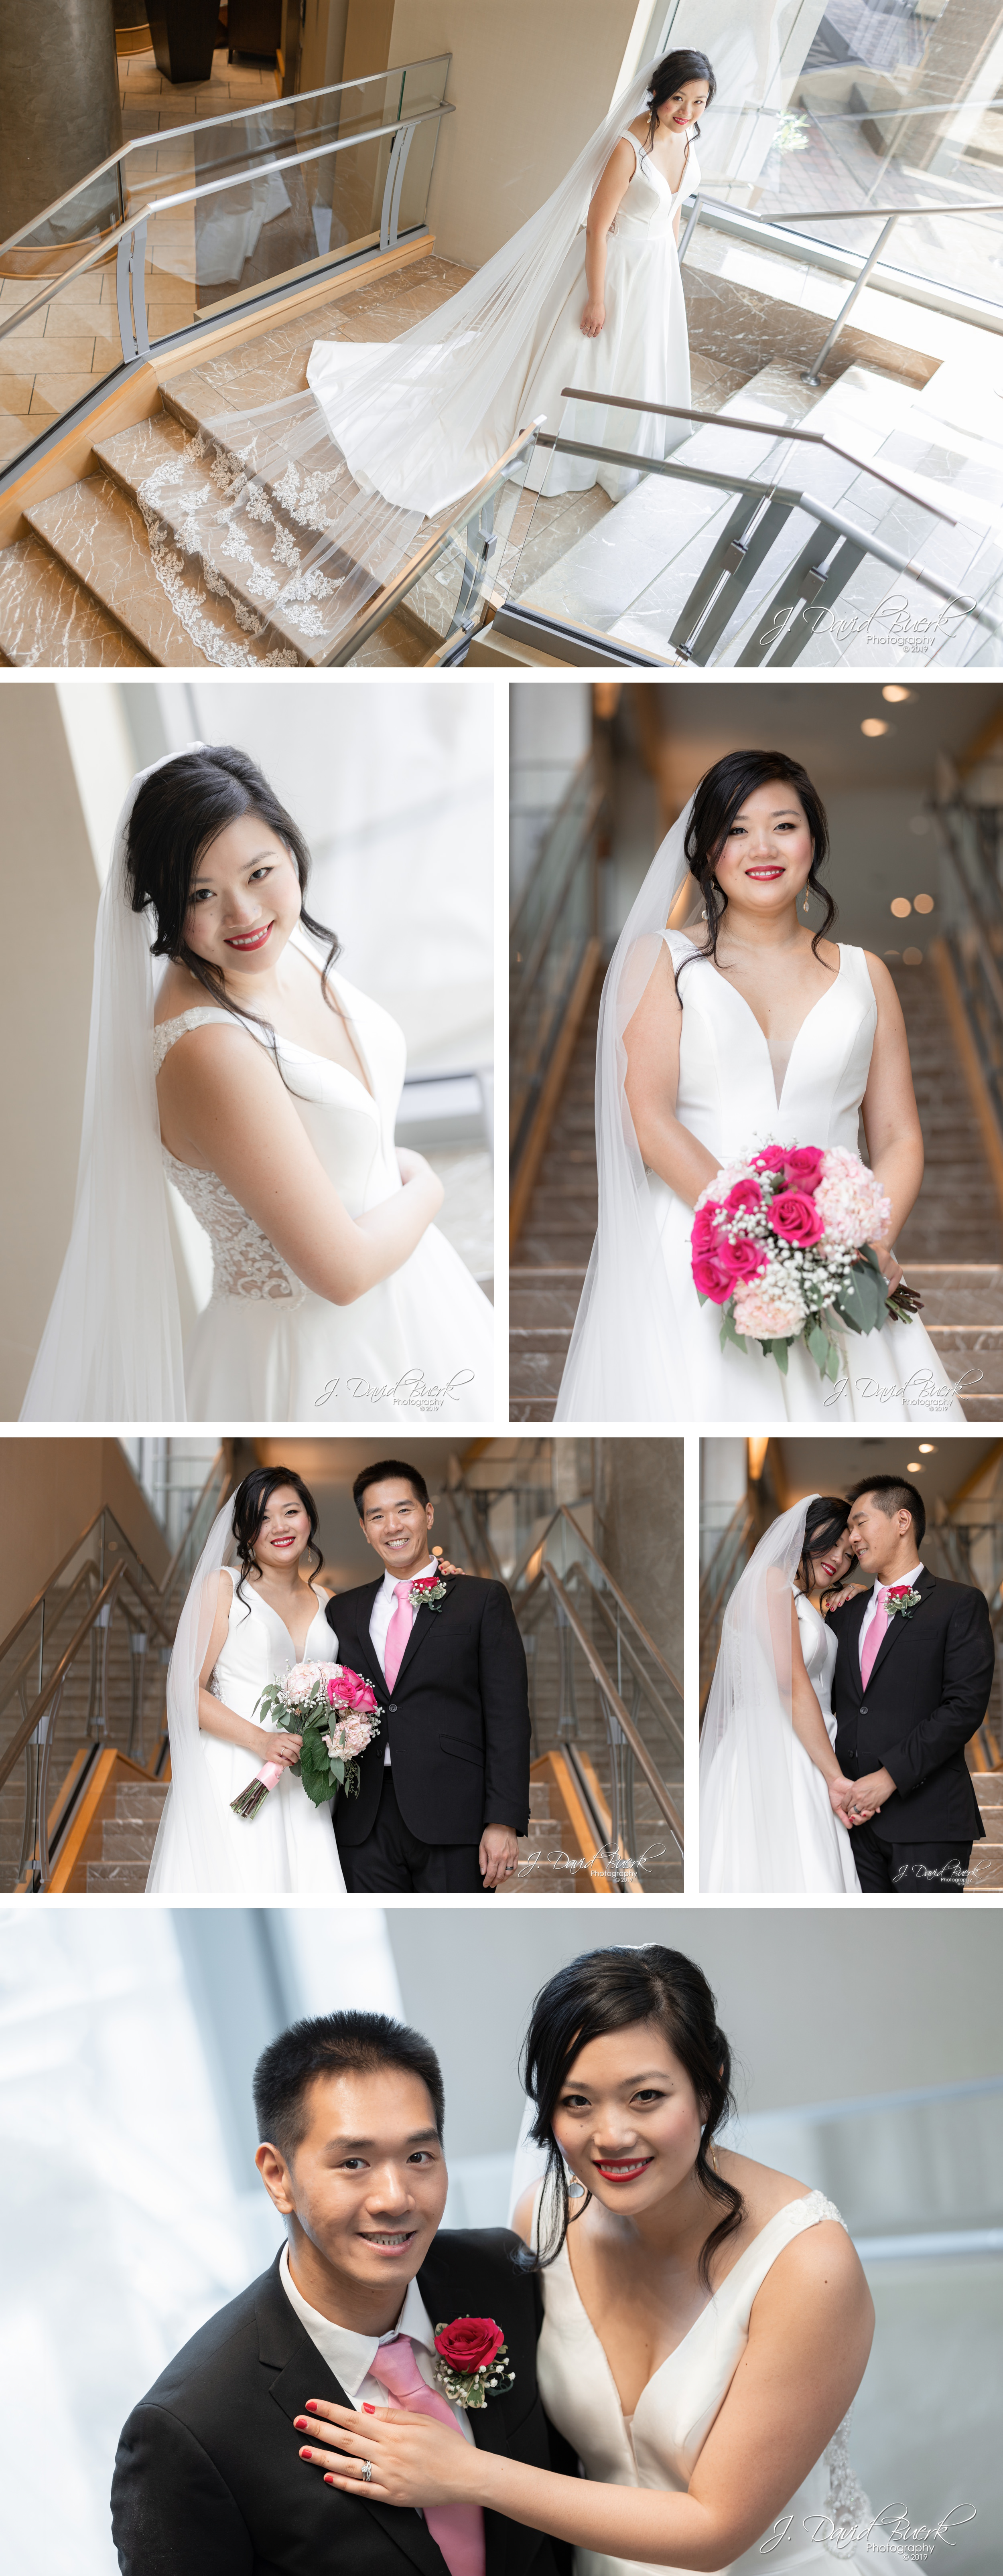 20190706 - David and Tiffany - Married 5.jpg